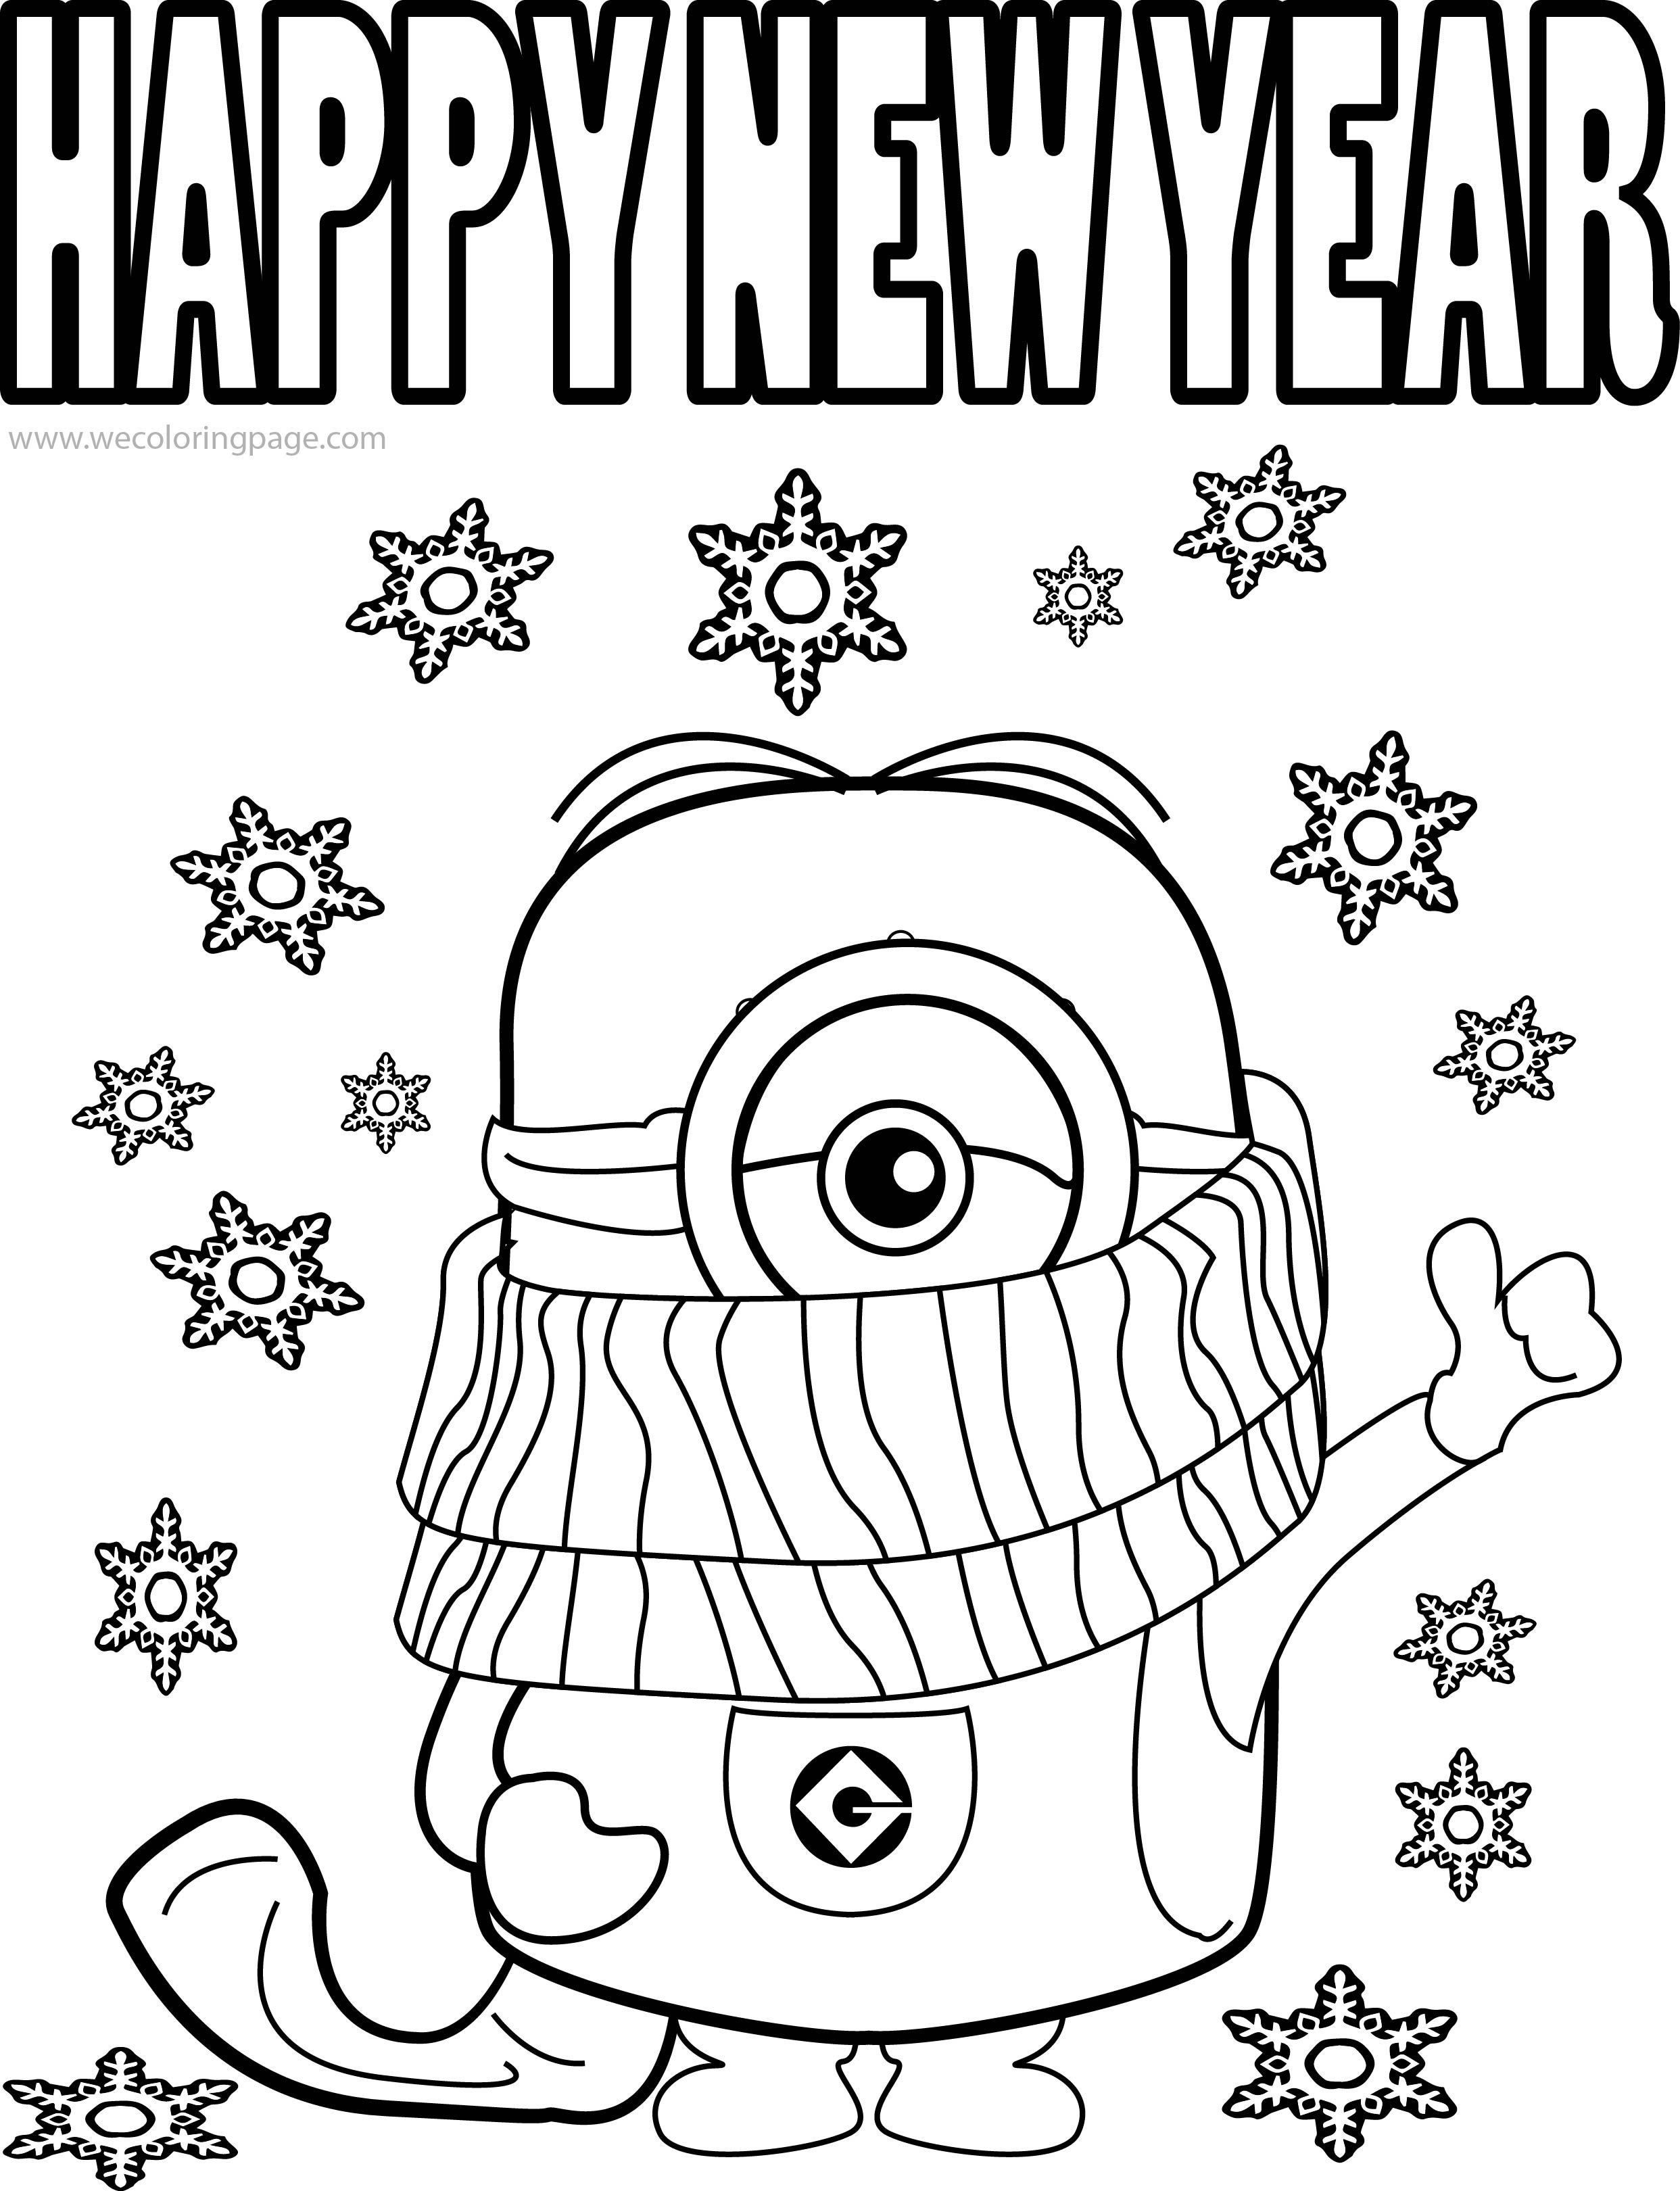 Best Funny Minions Quotes And Picture Cold Weather Happy New Year Coloring Page New Year Coloring Pages Rudolph Coloring Pages New Year S Eve Colors